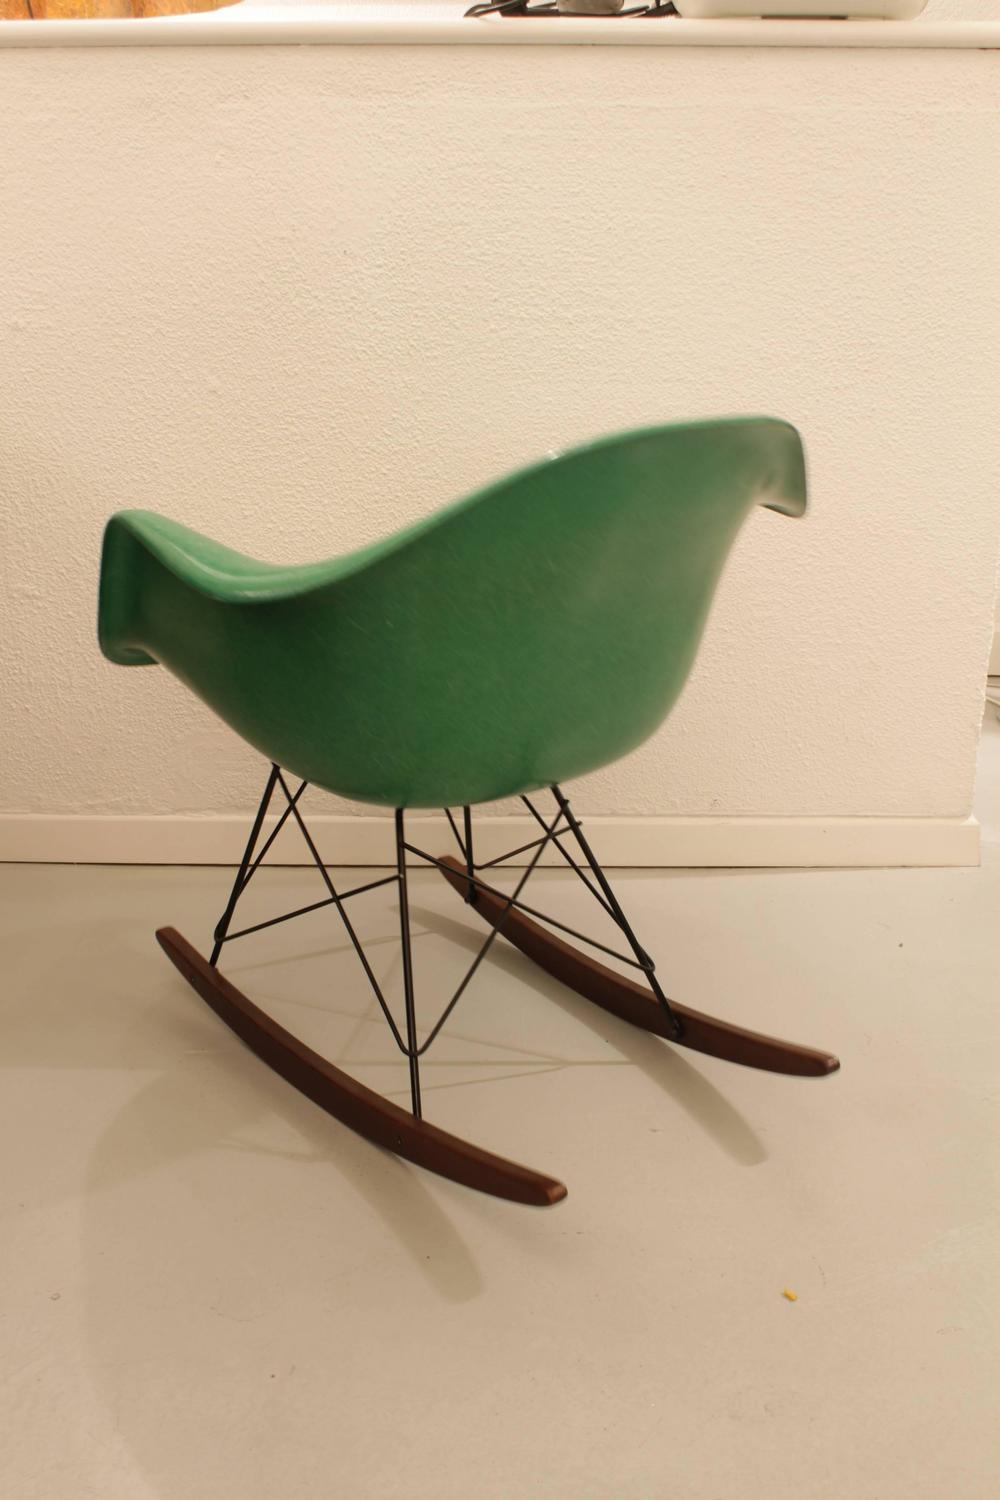 charles eames rocking chair apple green for sale at 1stdibs. Black Bedroom Furniture Sets. Home Design Ideas